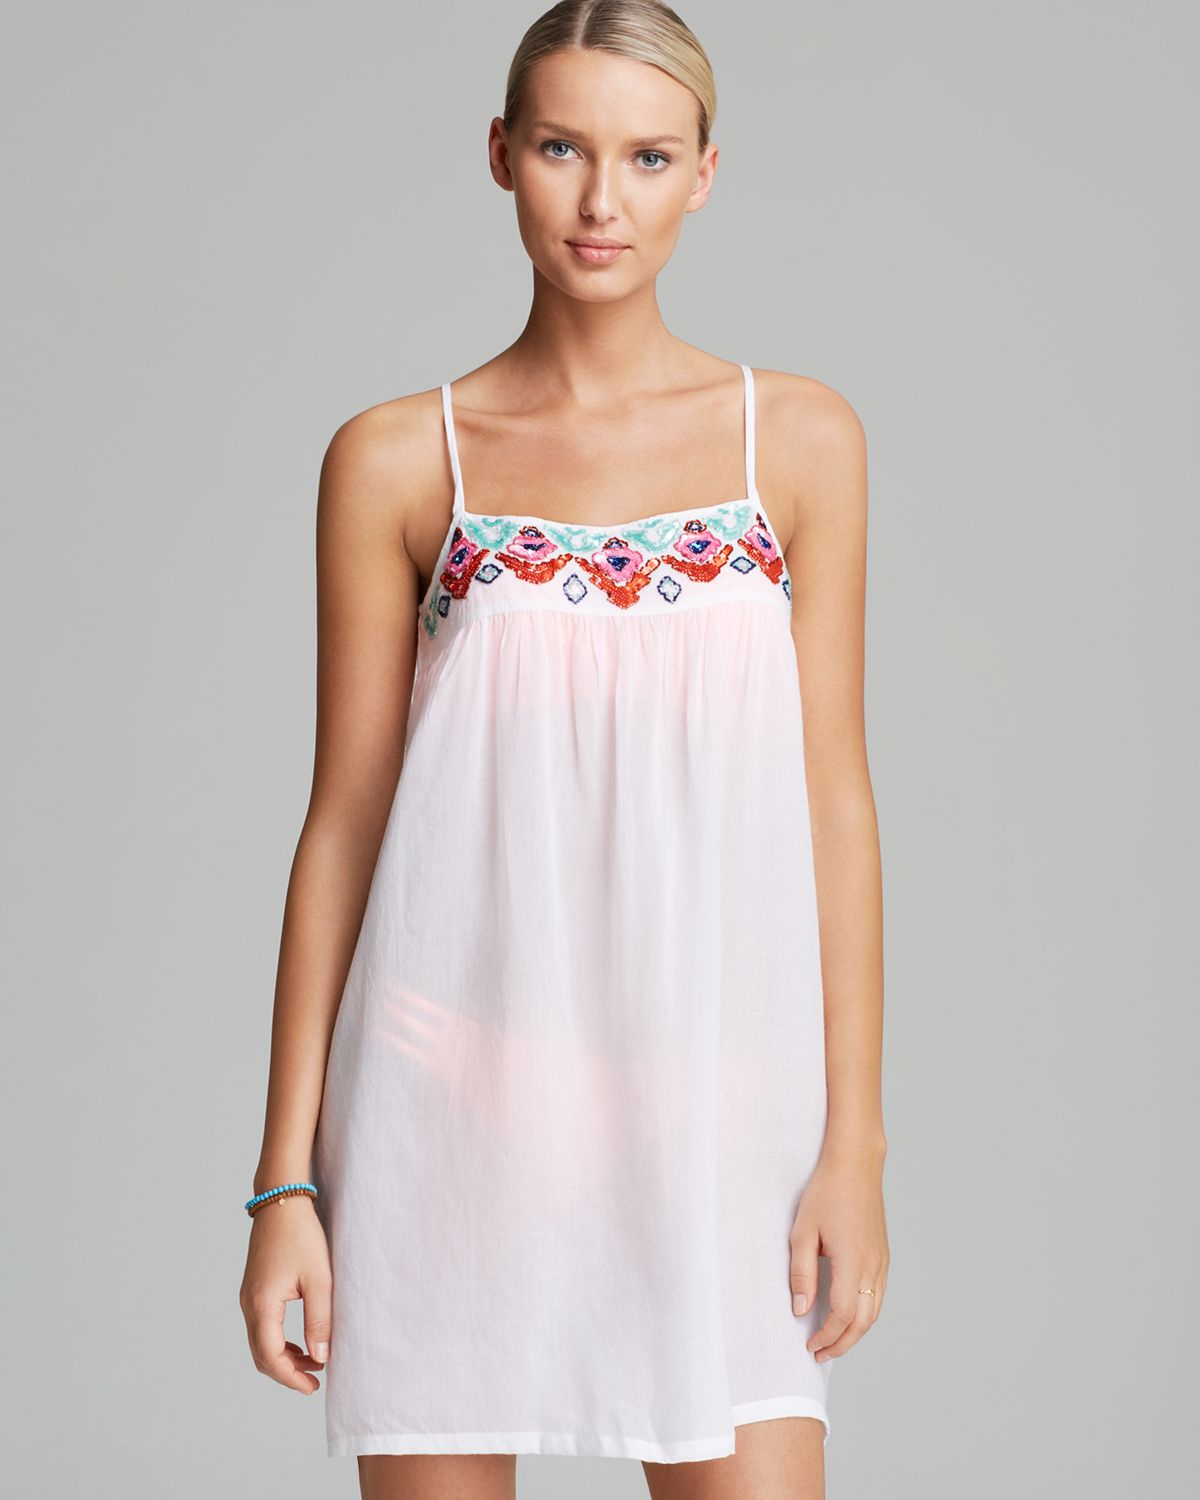 Dkny swimsuit cover up